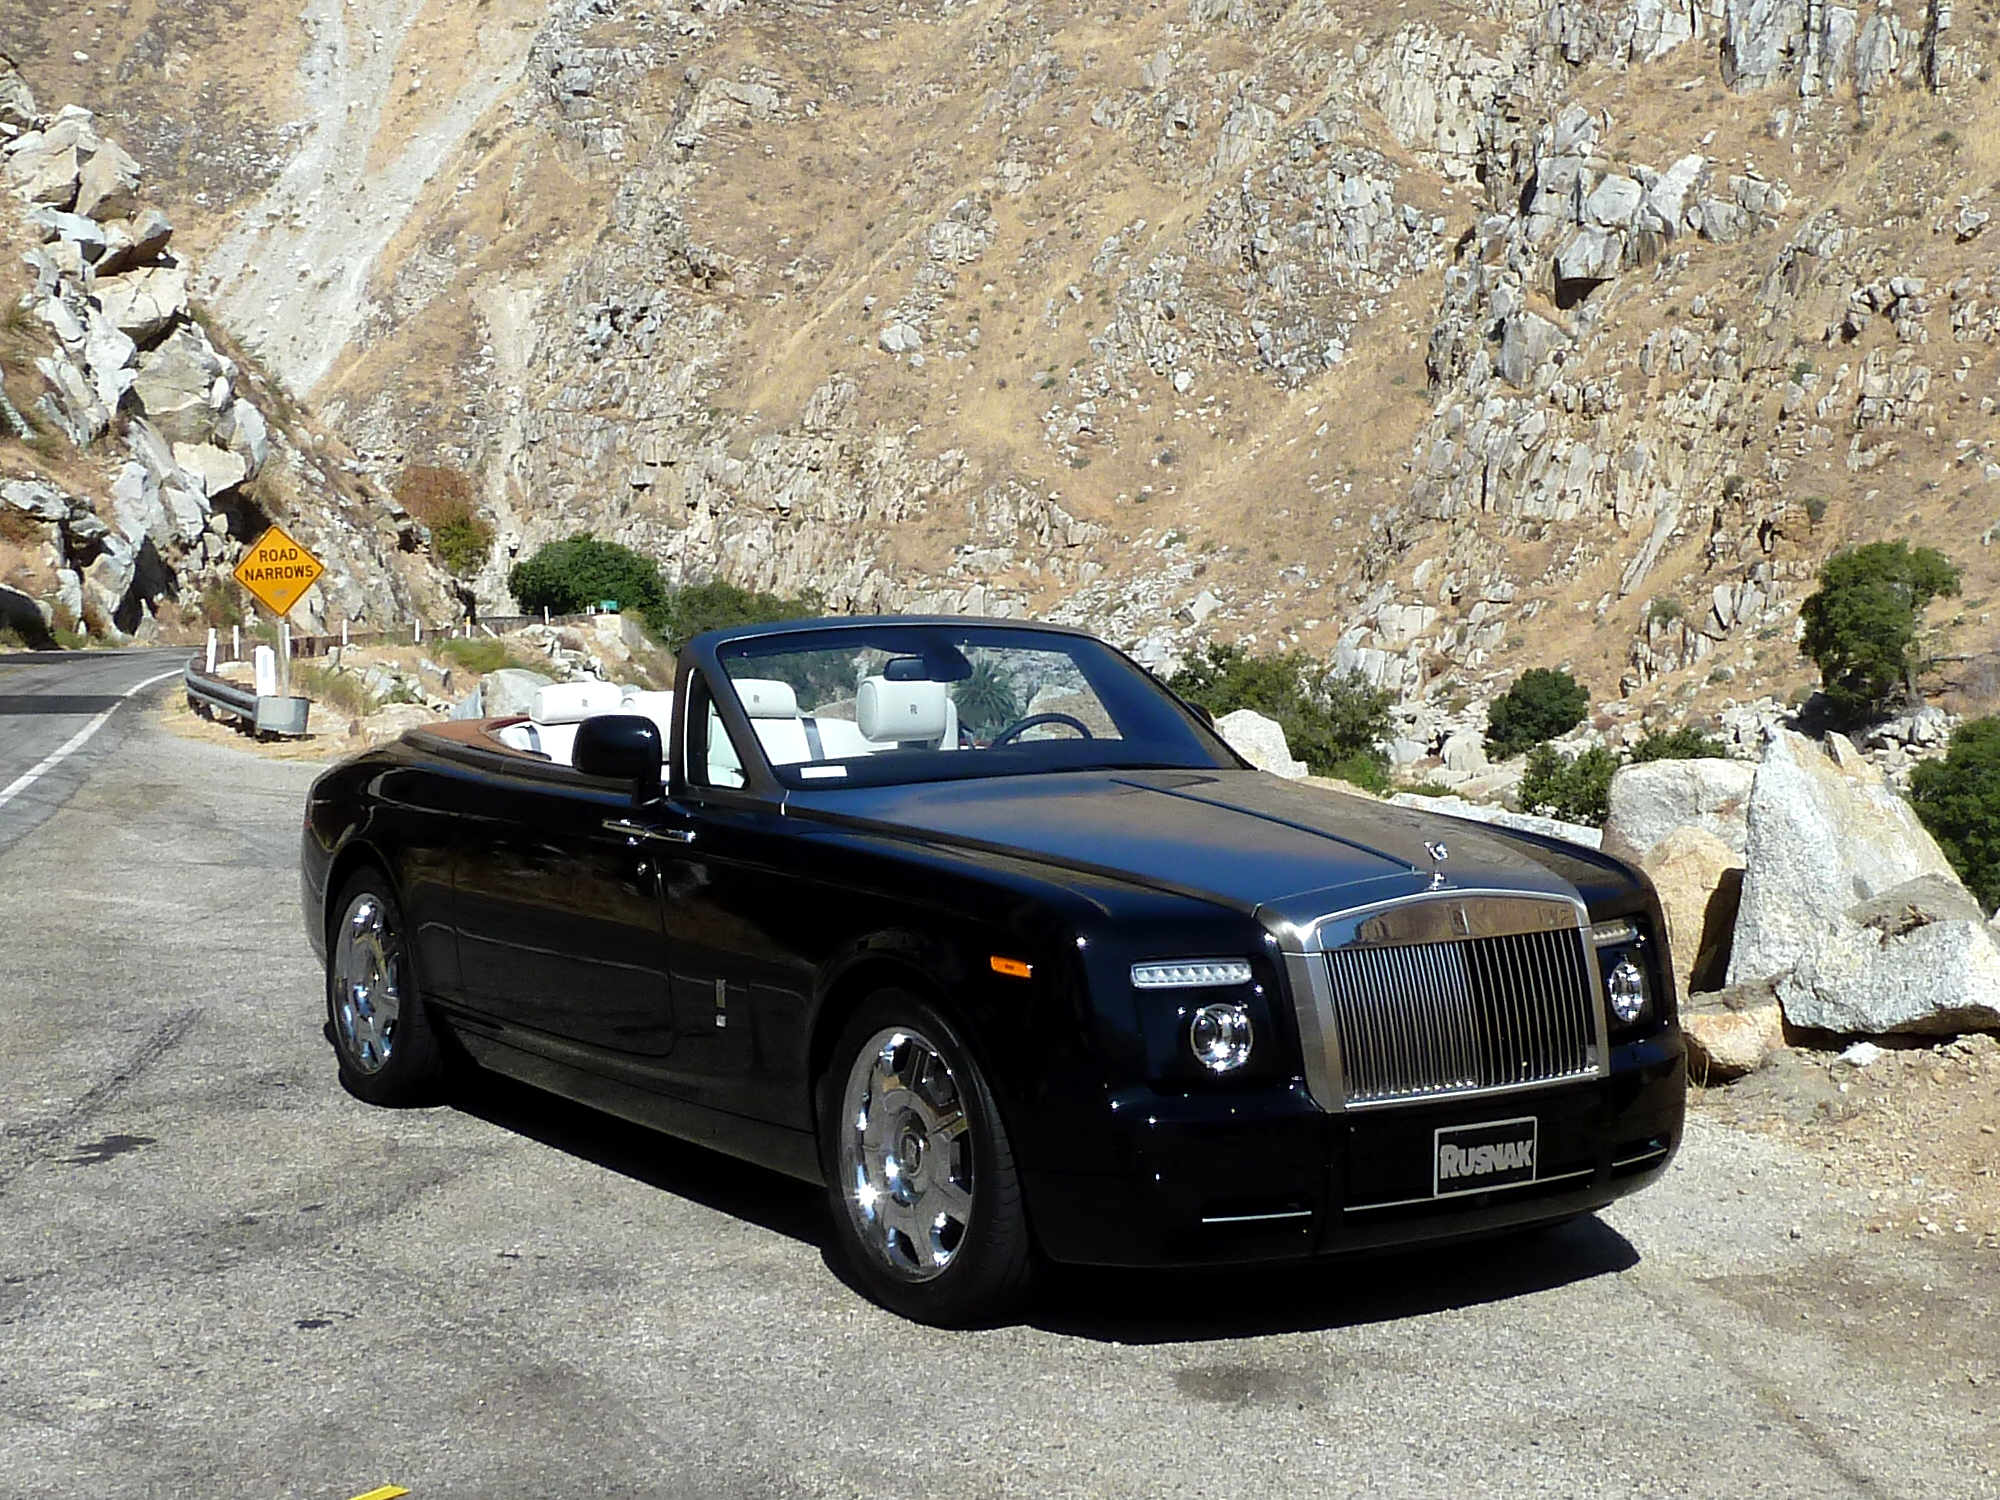 2008 Rolls royce Phantom Drophead Coupe #3